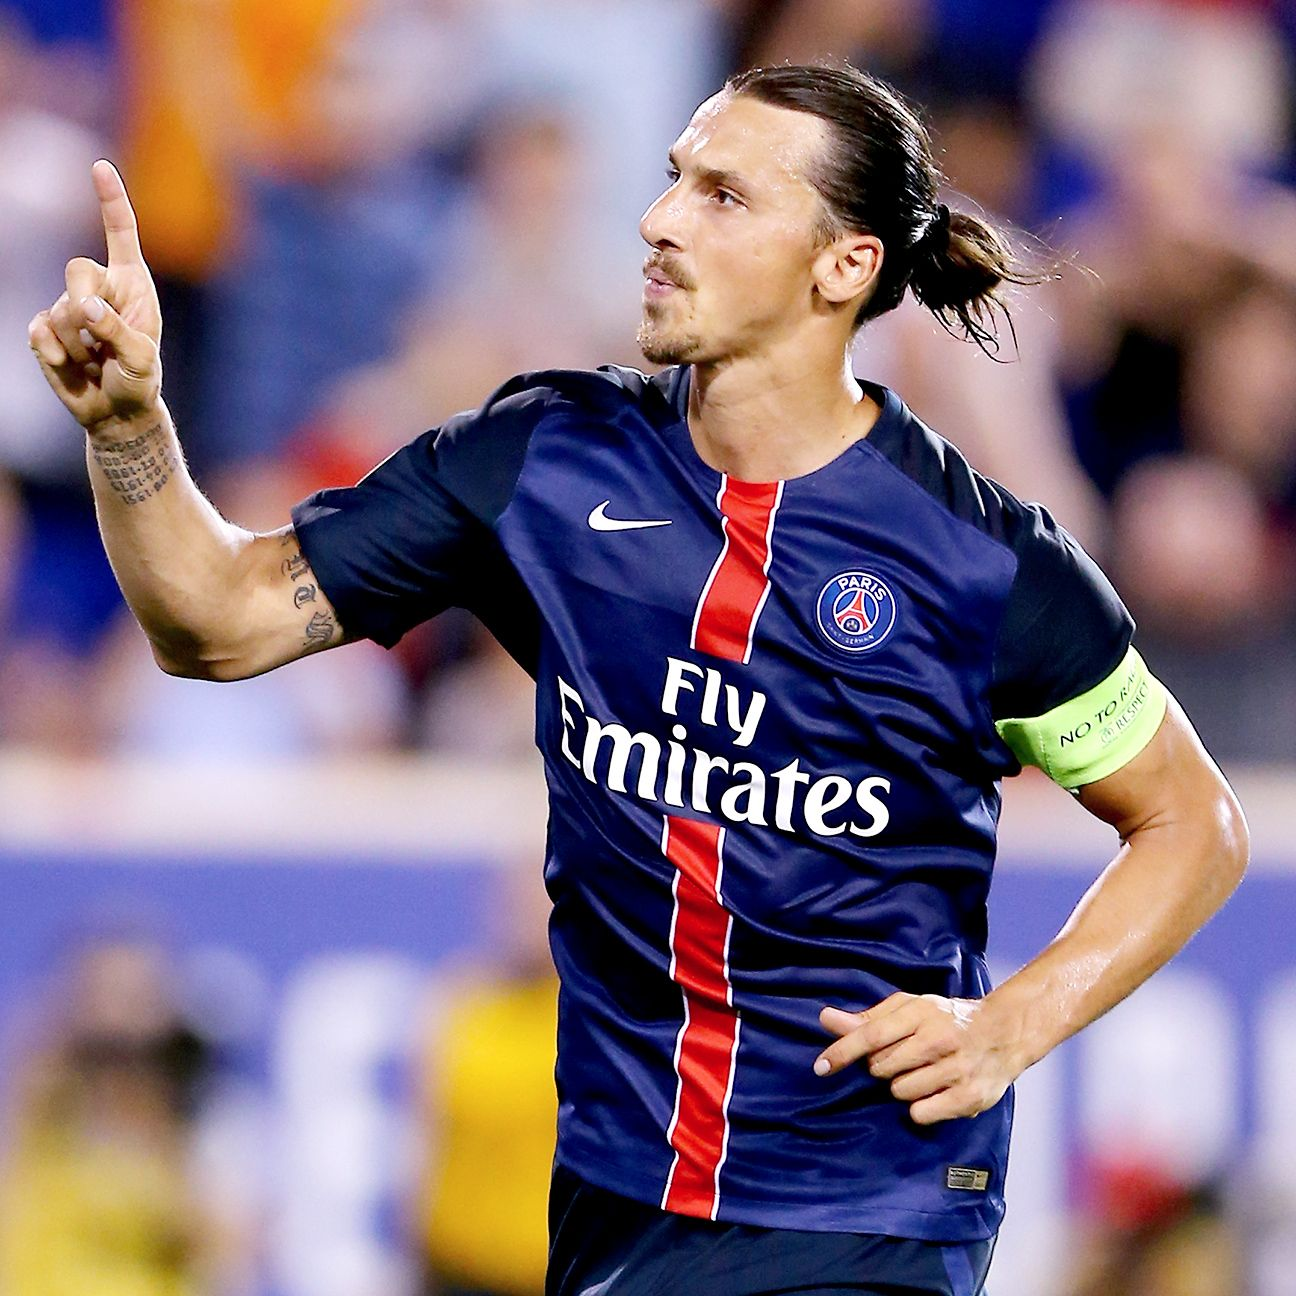 Zlatan Ibrahimovic returns to the club where he made his professional debut in 1999.